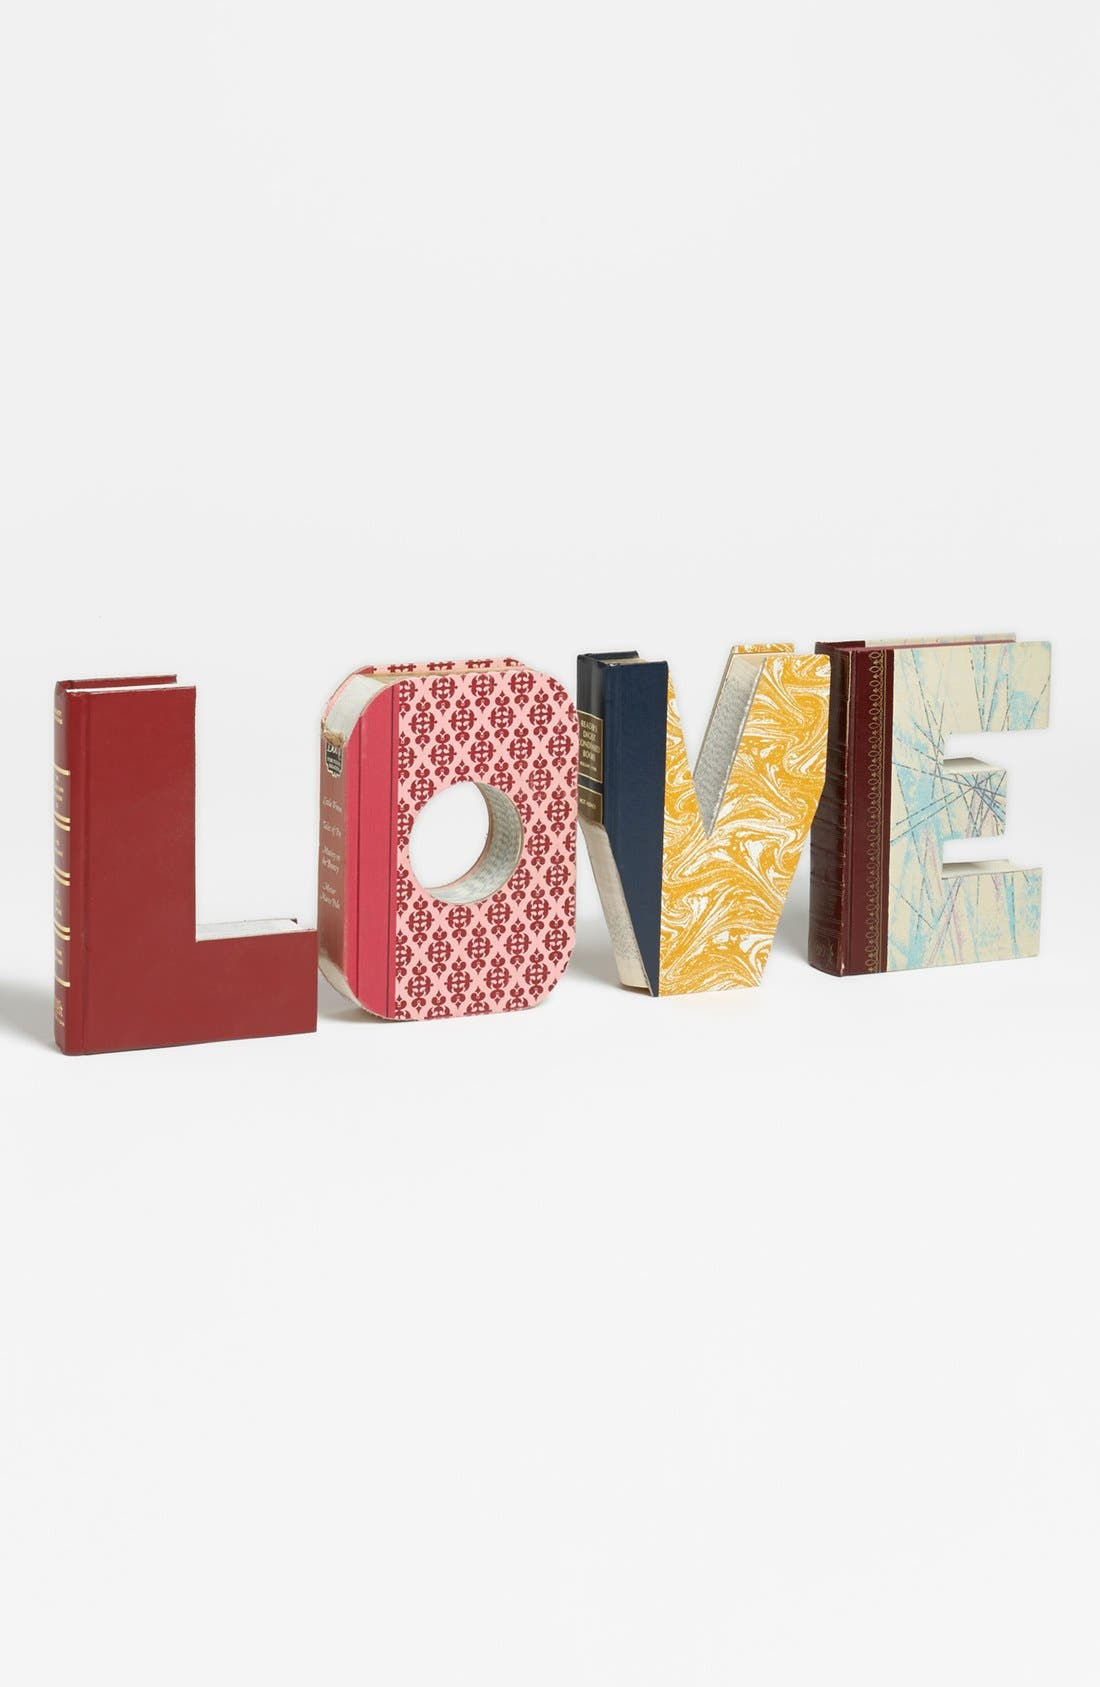 Main Image - Second Nature by Hand 'Love - One of a Kind' Hand-Carved Recycled Book Shelf Art